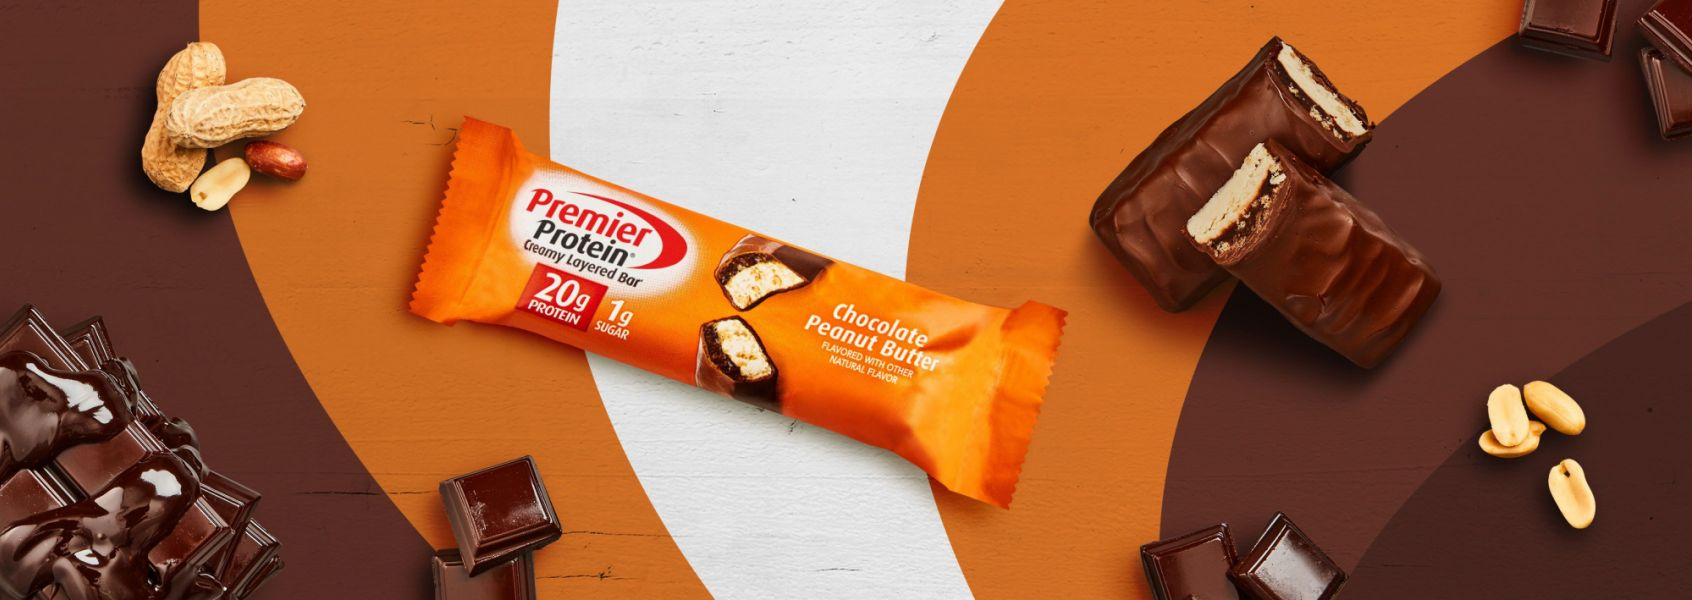 A photo of Premier Protein 20g Chocolate Peanut Butter Protein Bar